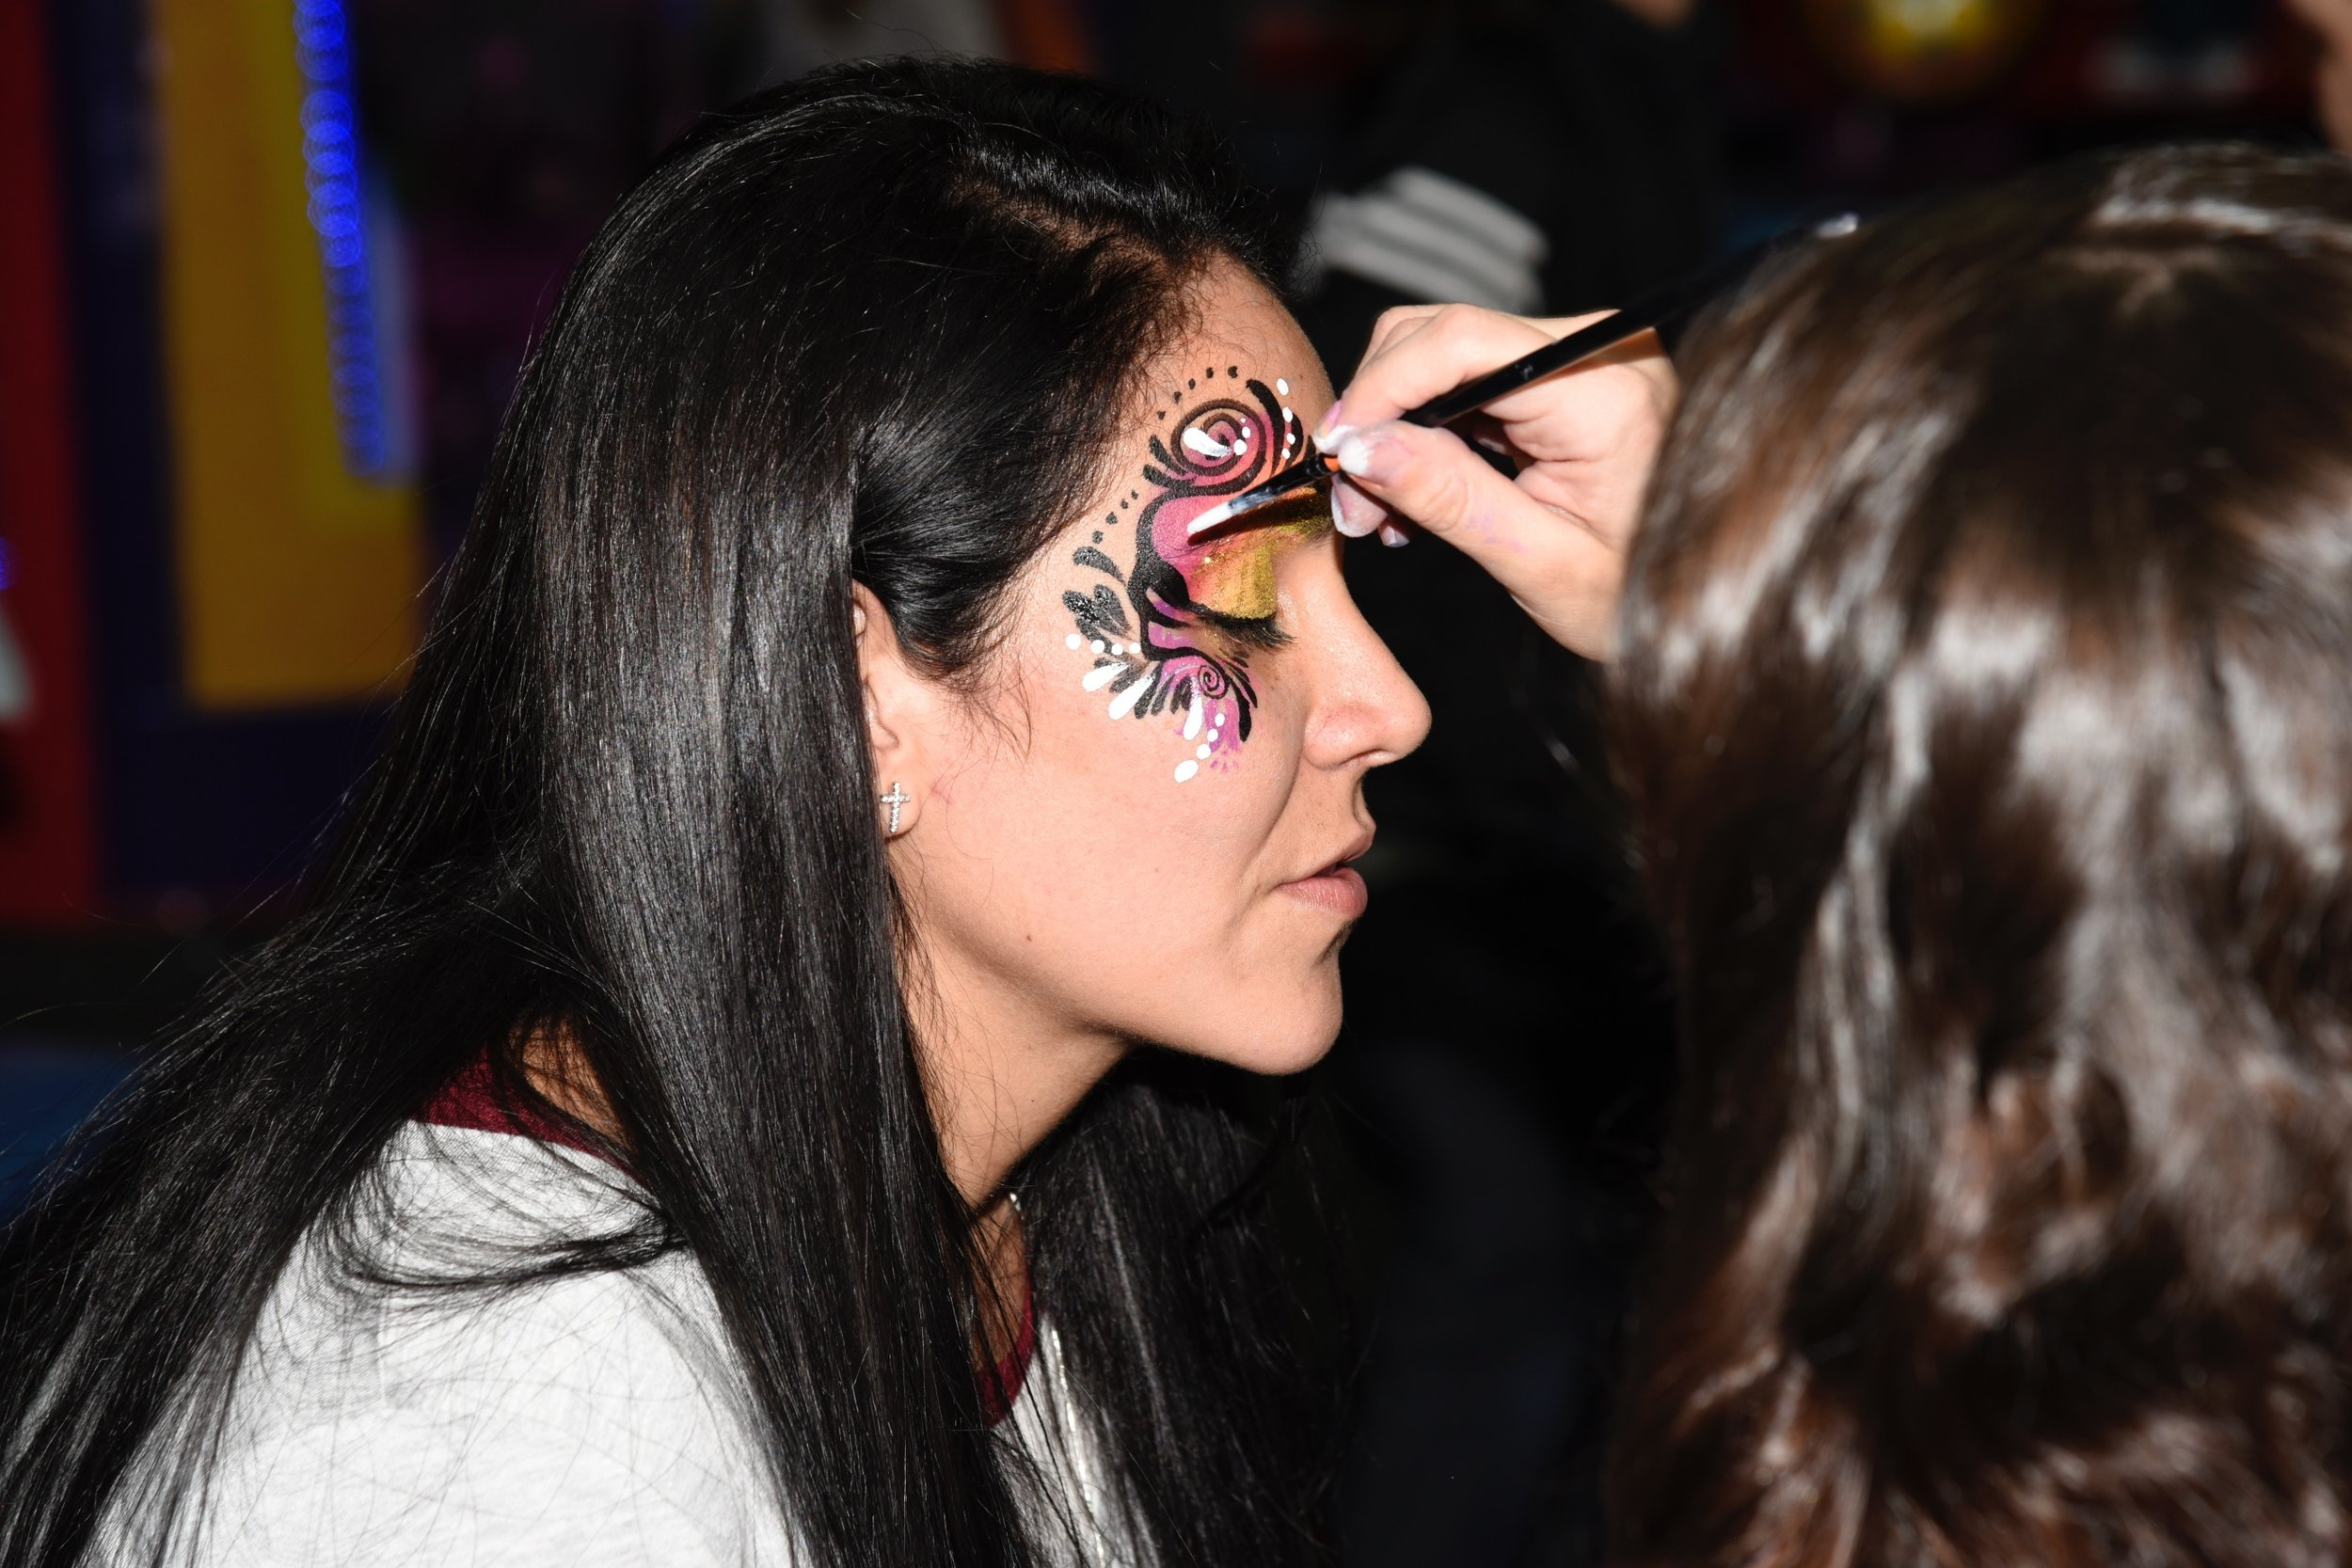 Laura M Hoyos face painting an adult